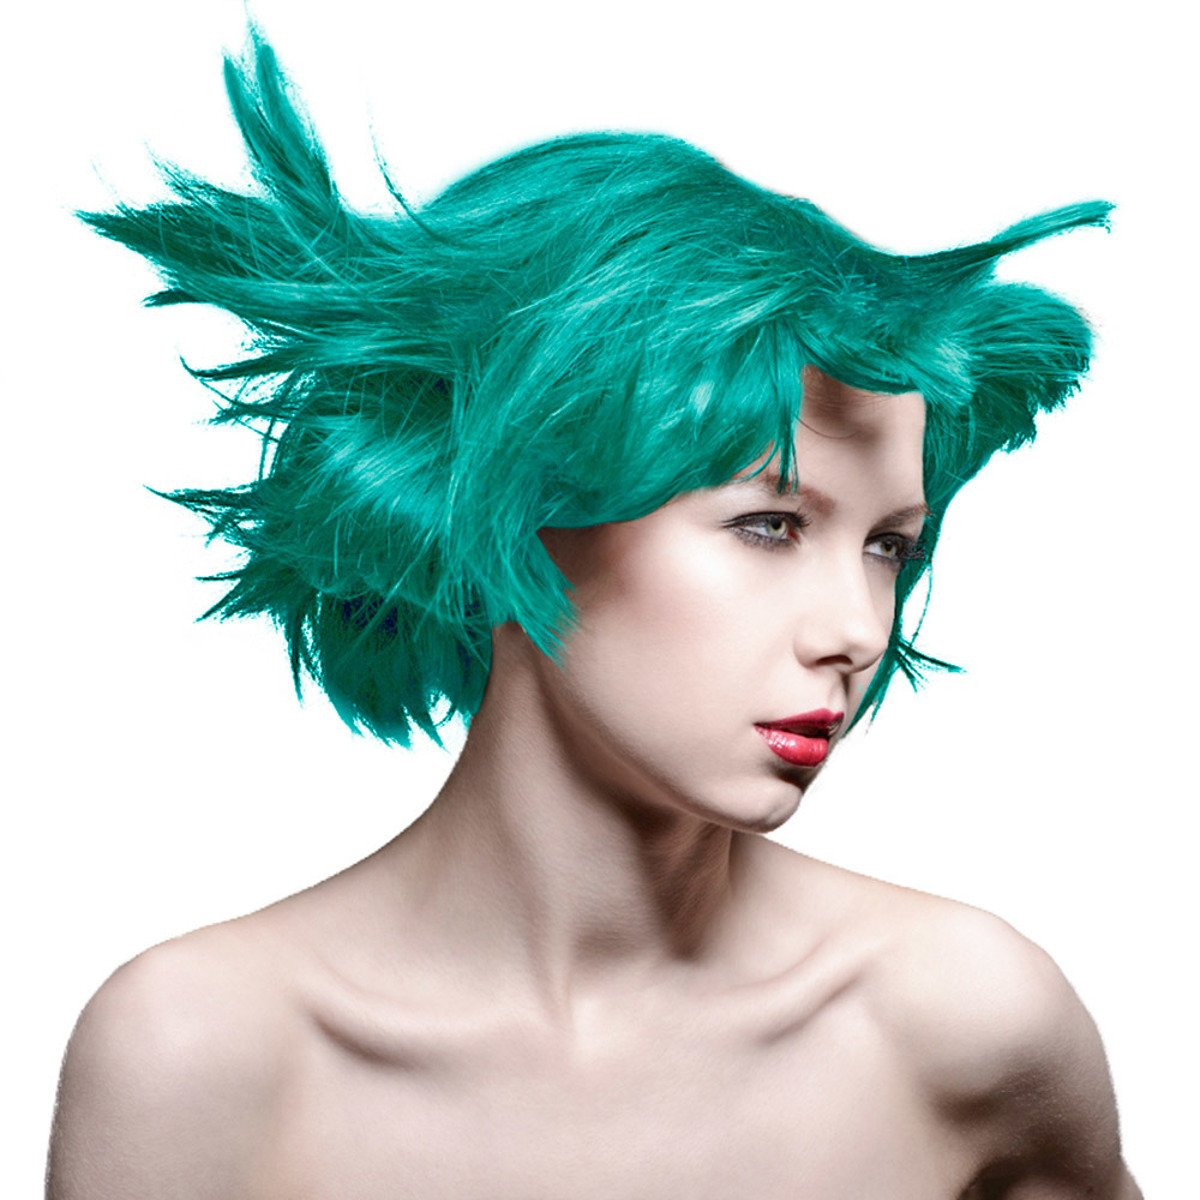 FARBA MANIC PANIC- HIGH VOLTAGE HAIR COLOR SIREN SONG